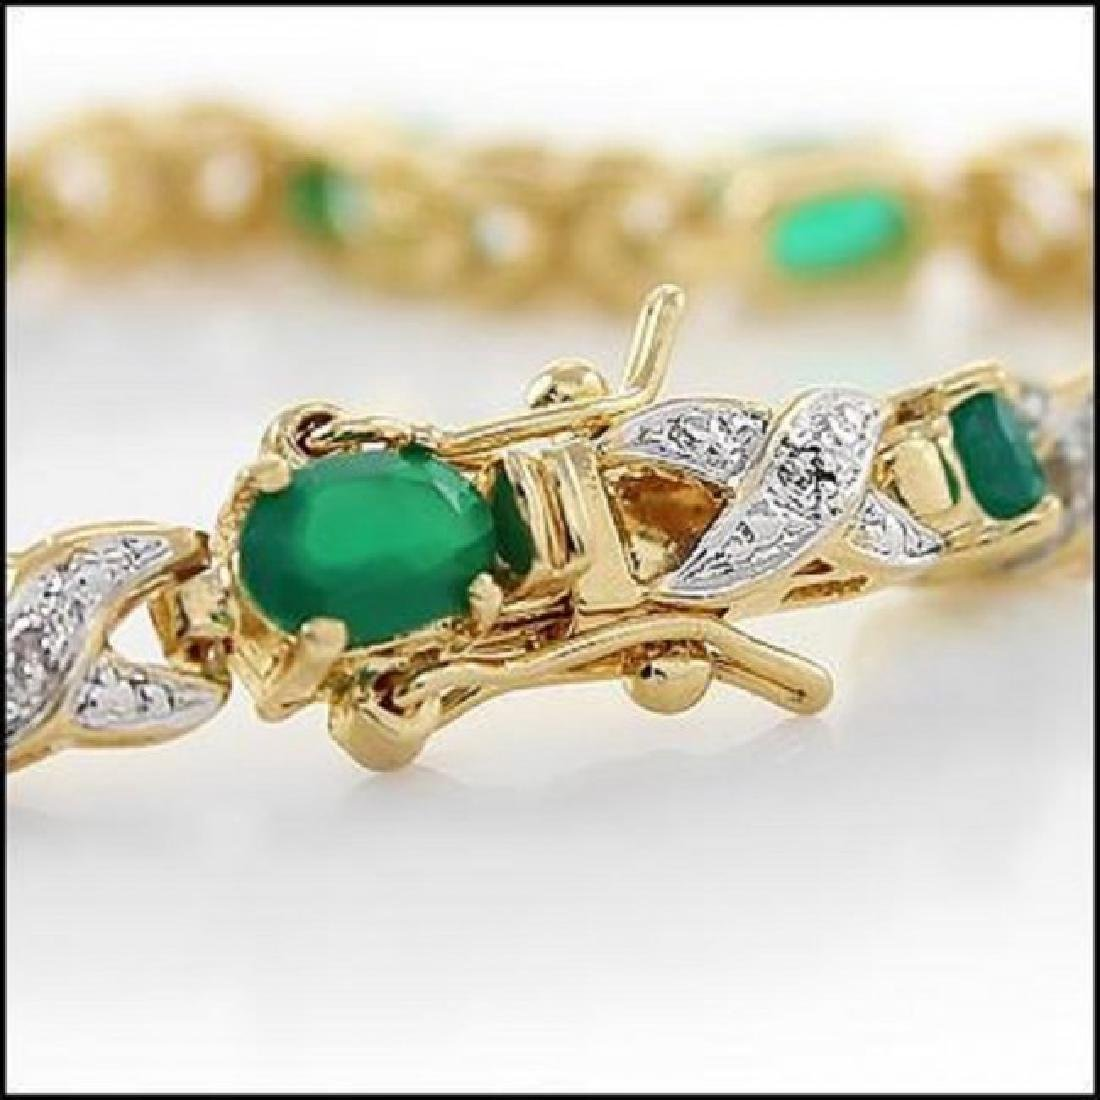 8.84 CT Green Agate & Diamond Designer Bracelet $1395 - 2